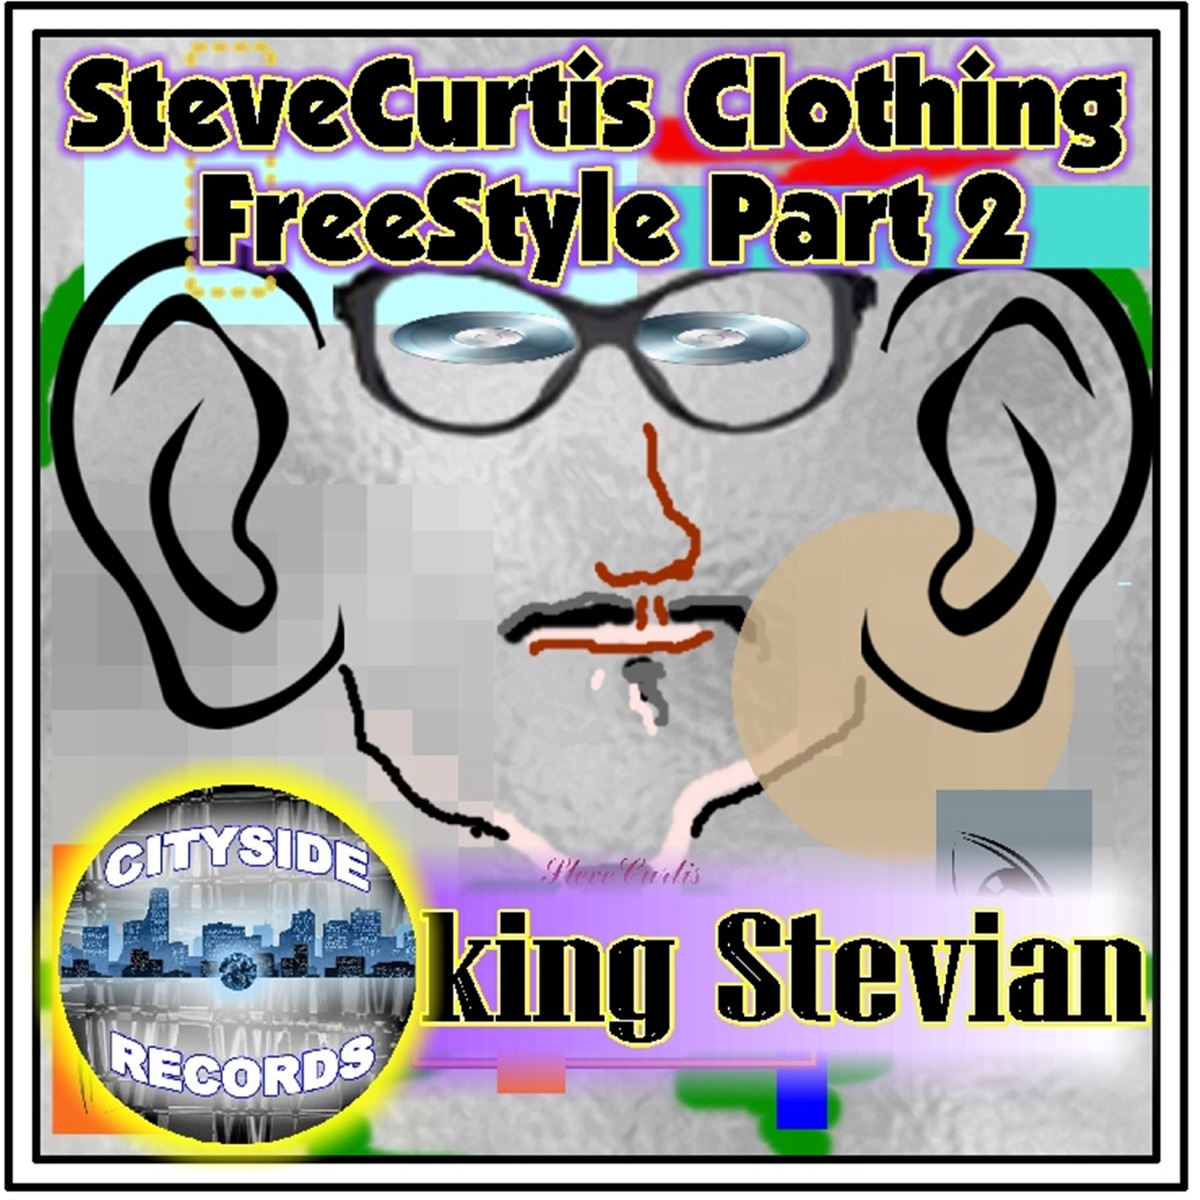 Stevecurtis Clothing Freestyle Part 2 - Single King Stevian CD cover